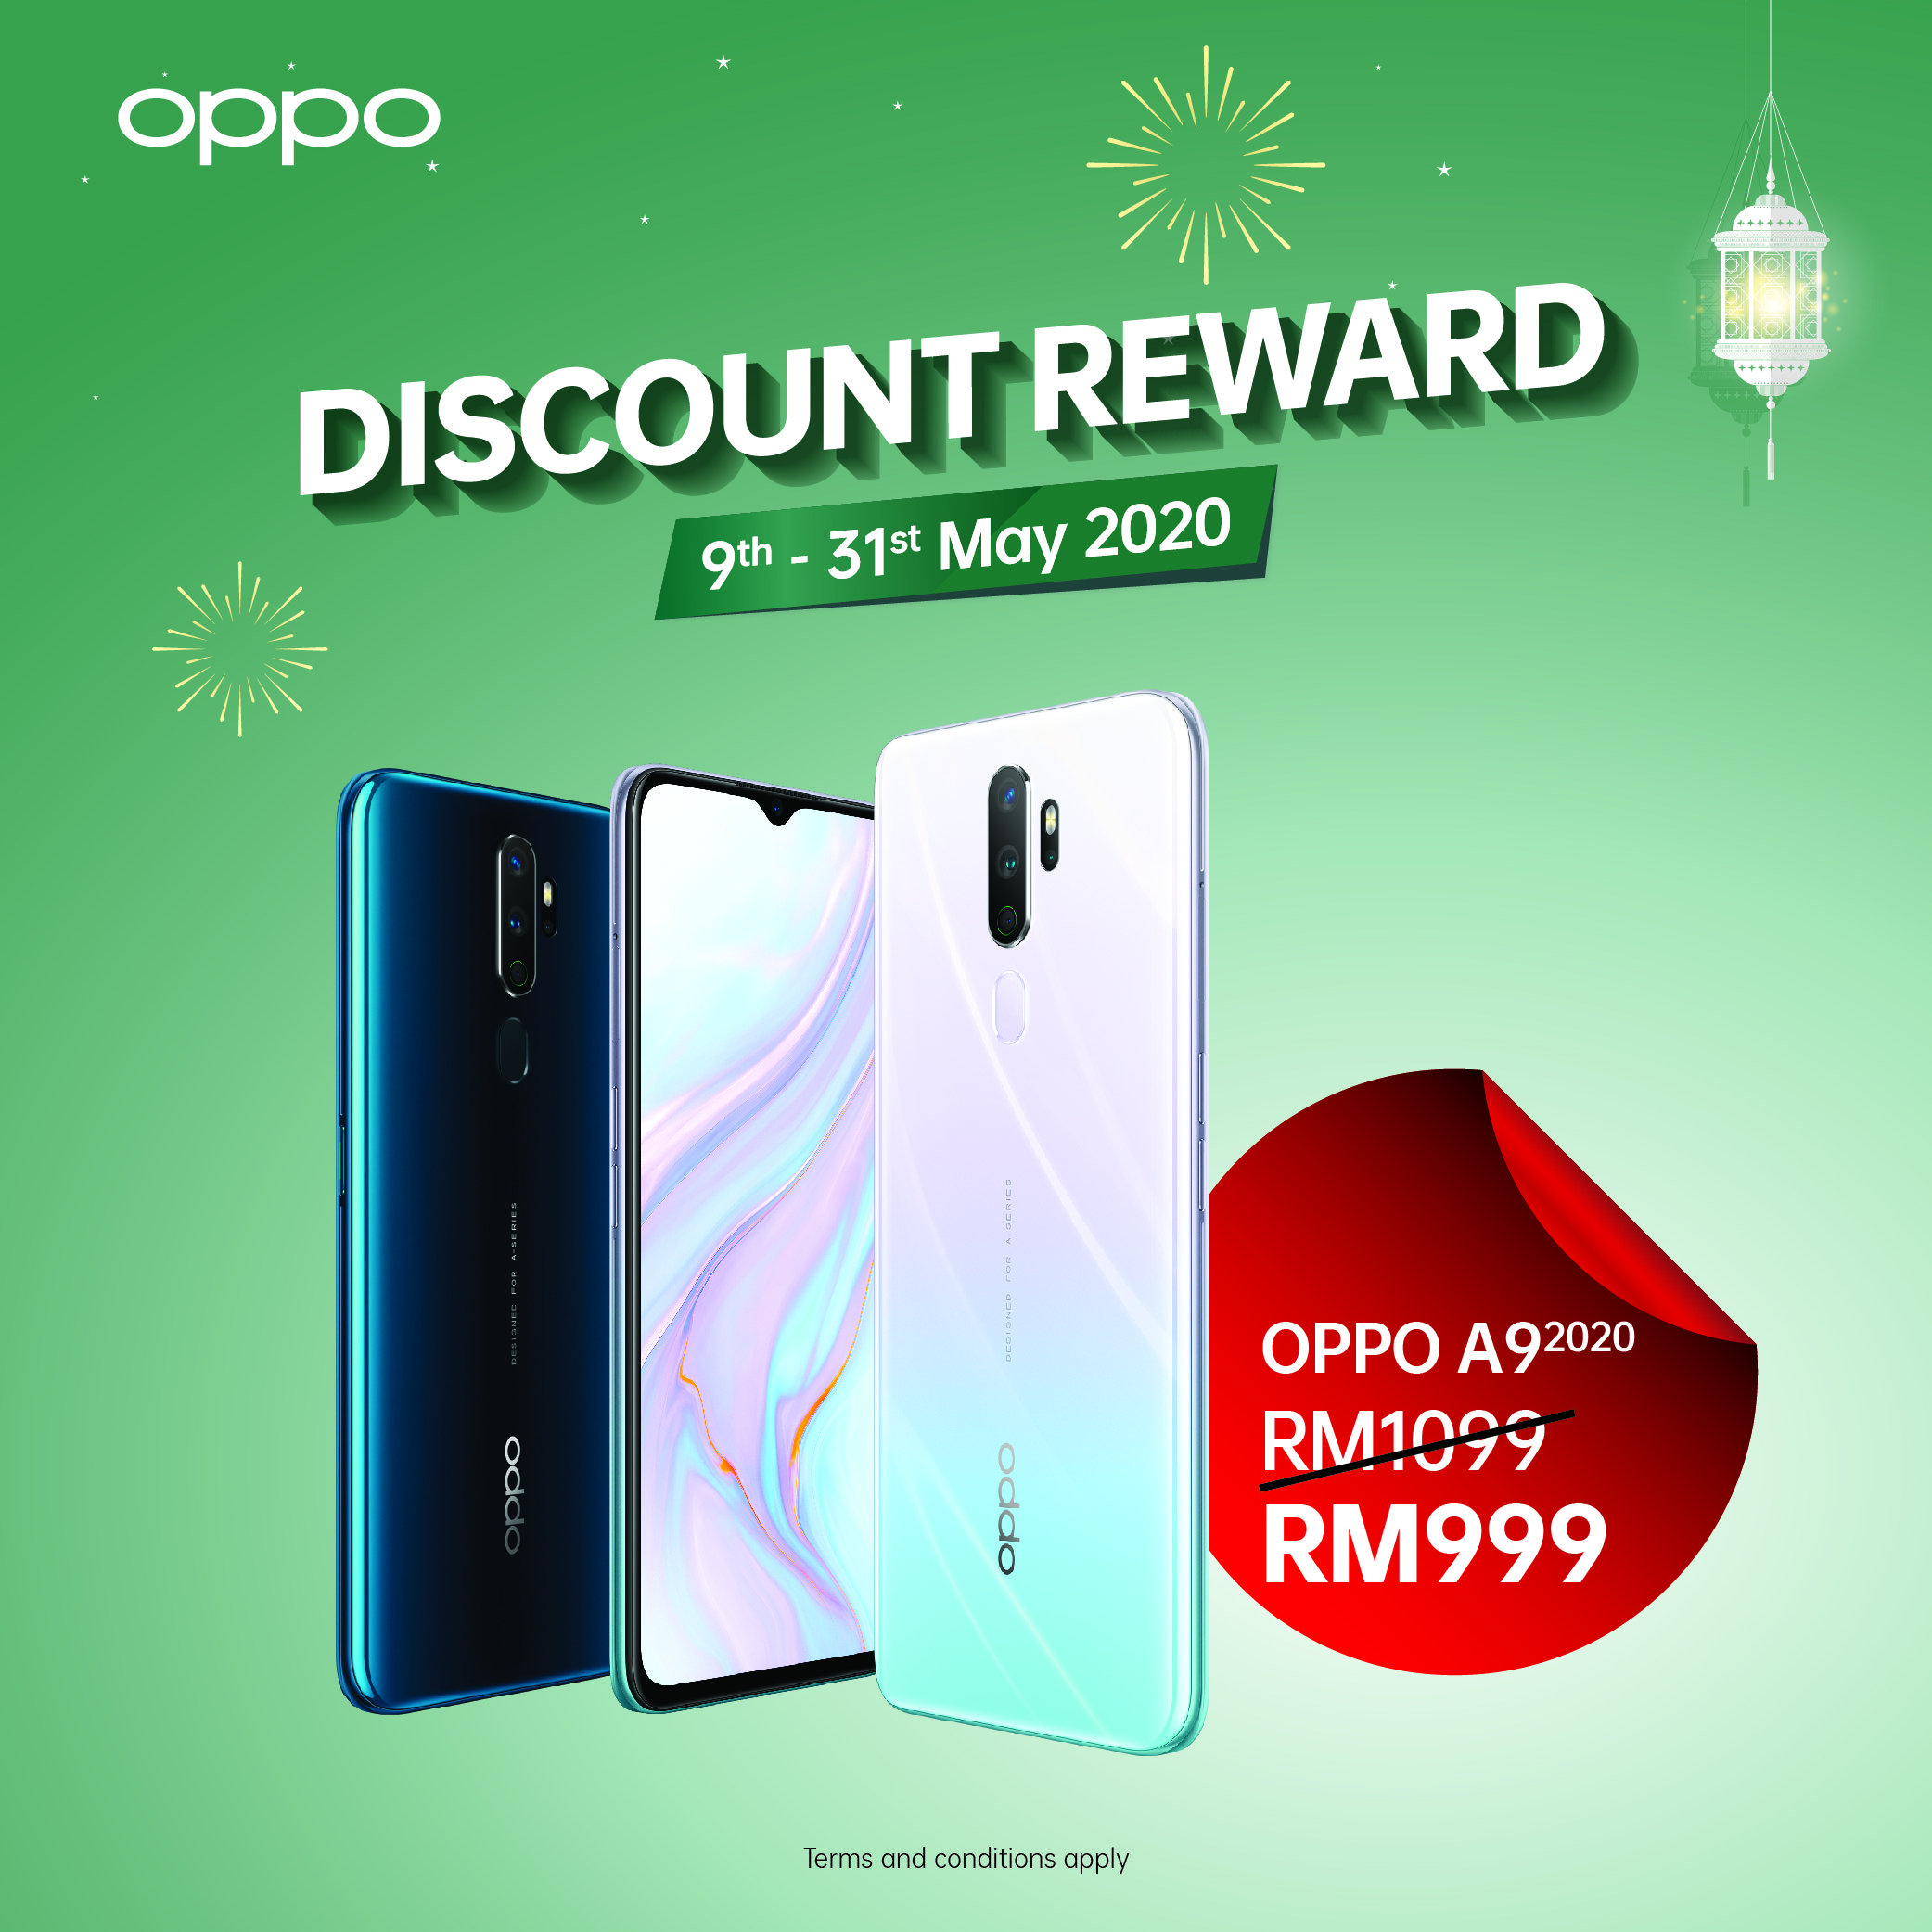 oppo discount reward